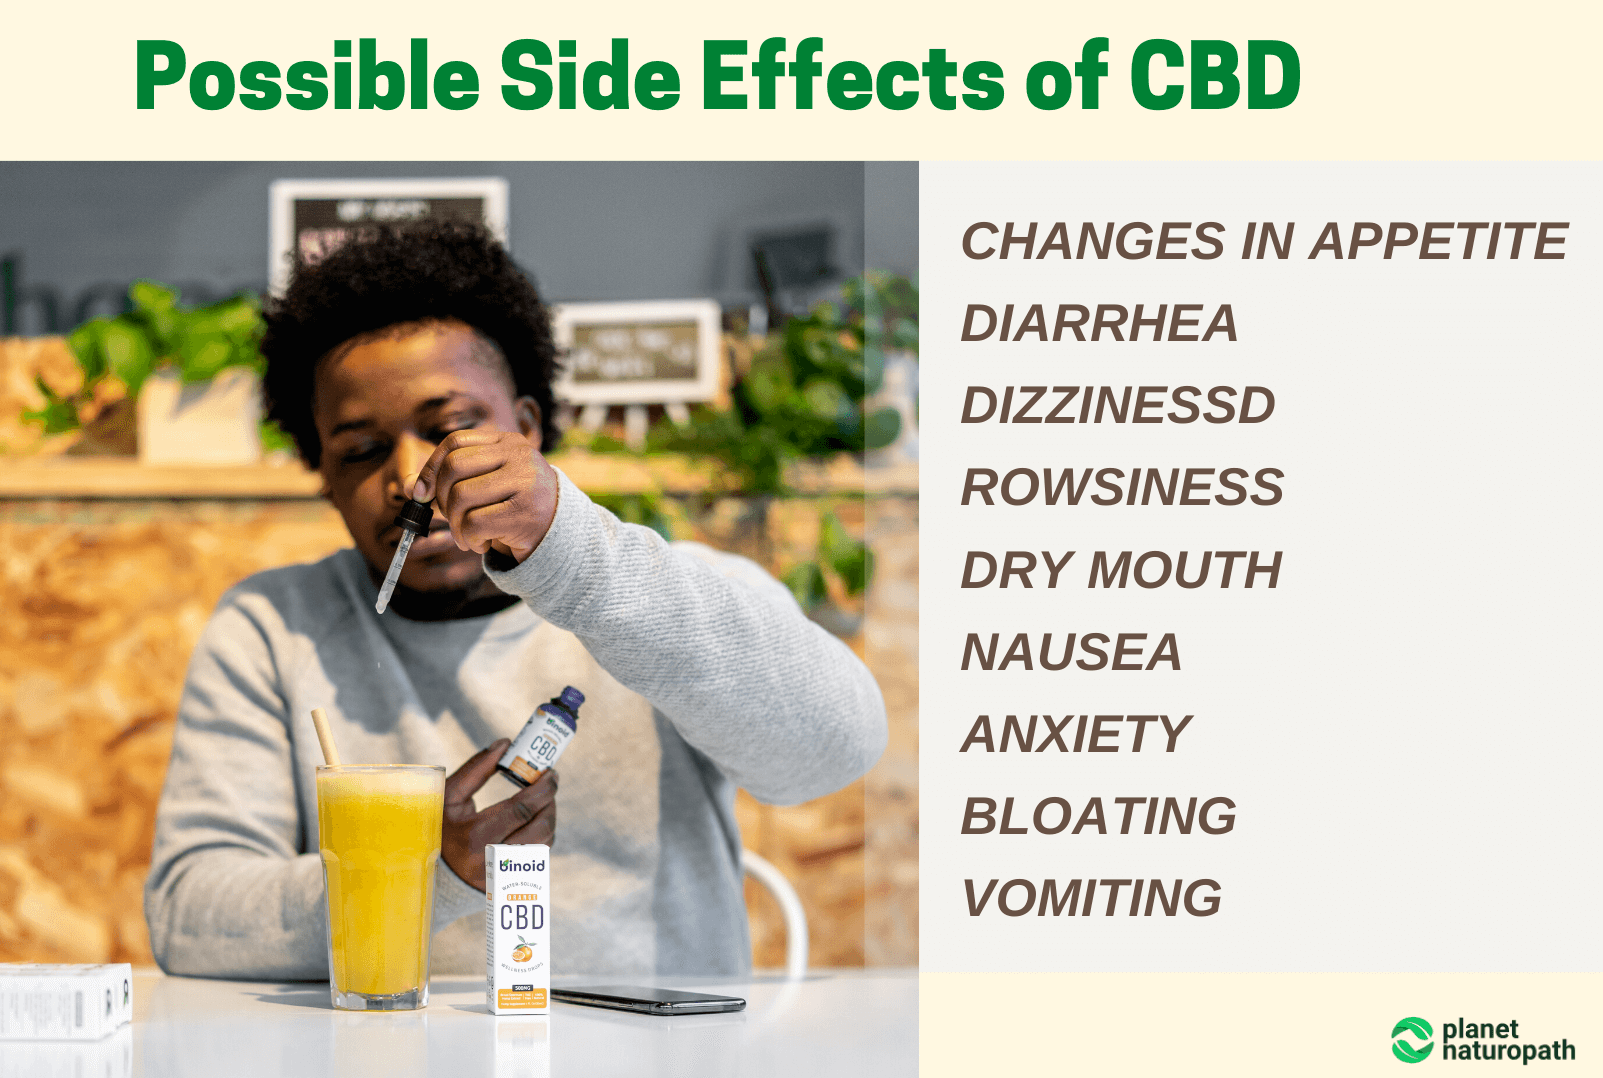 Possible-Side-Effects-of-CBD